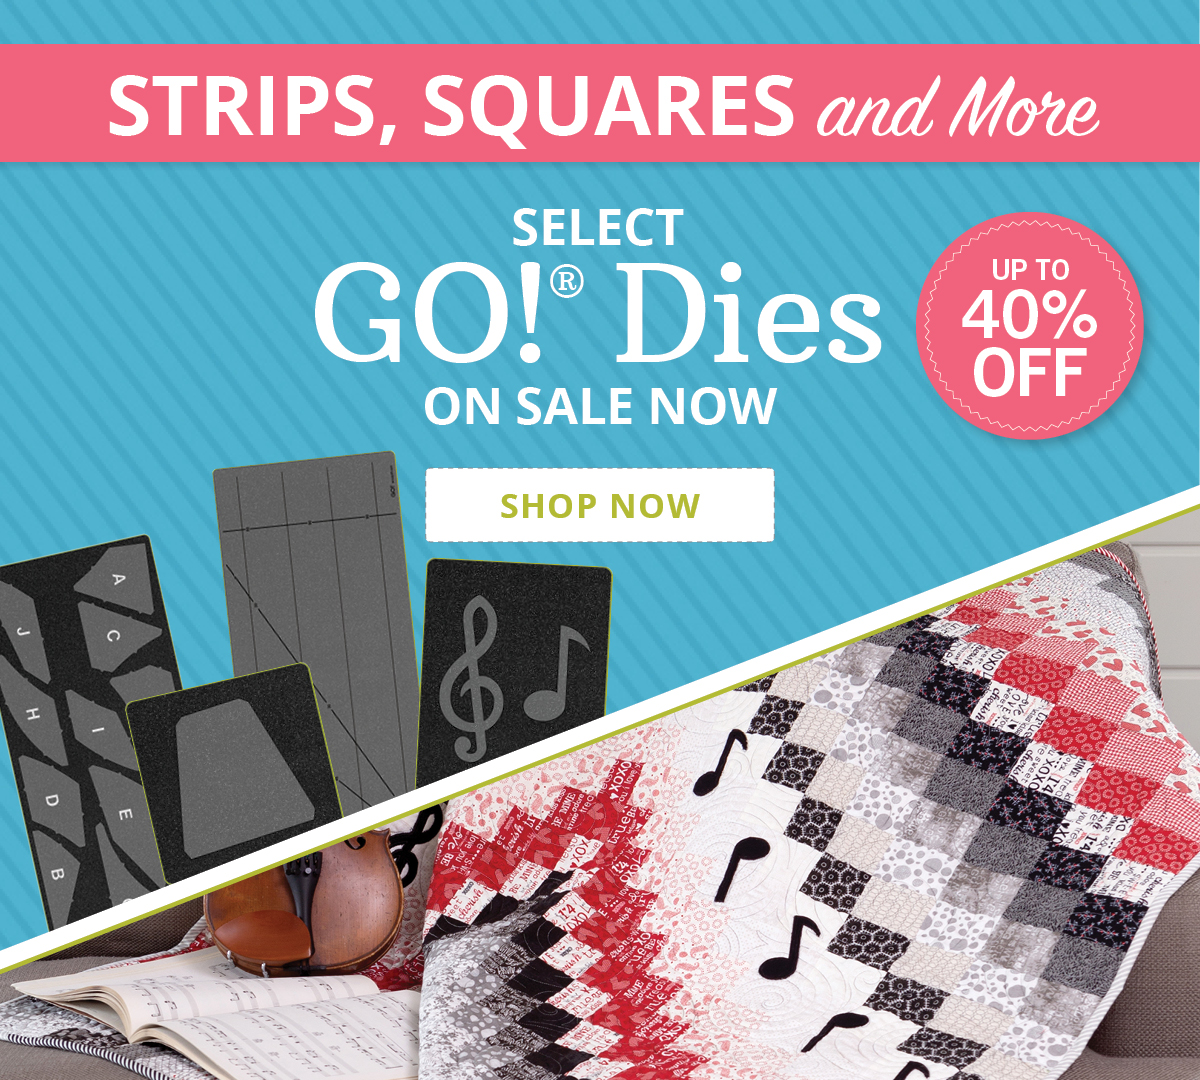 Let Your Creativity Blossom | Up to 40% Off Select GO! Dies >